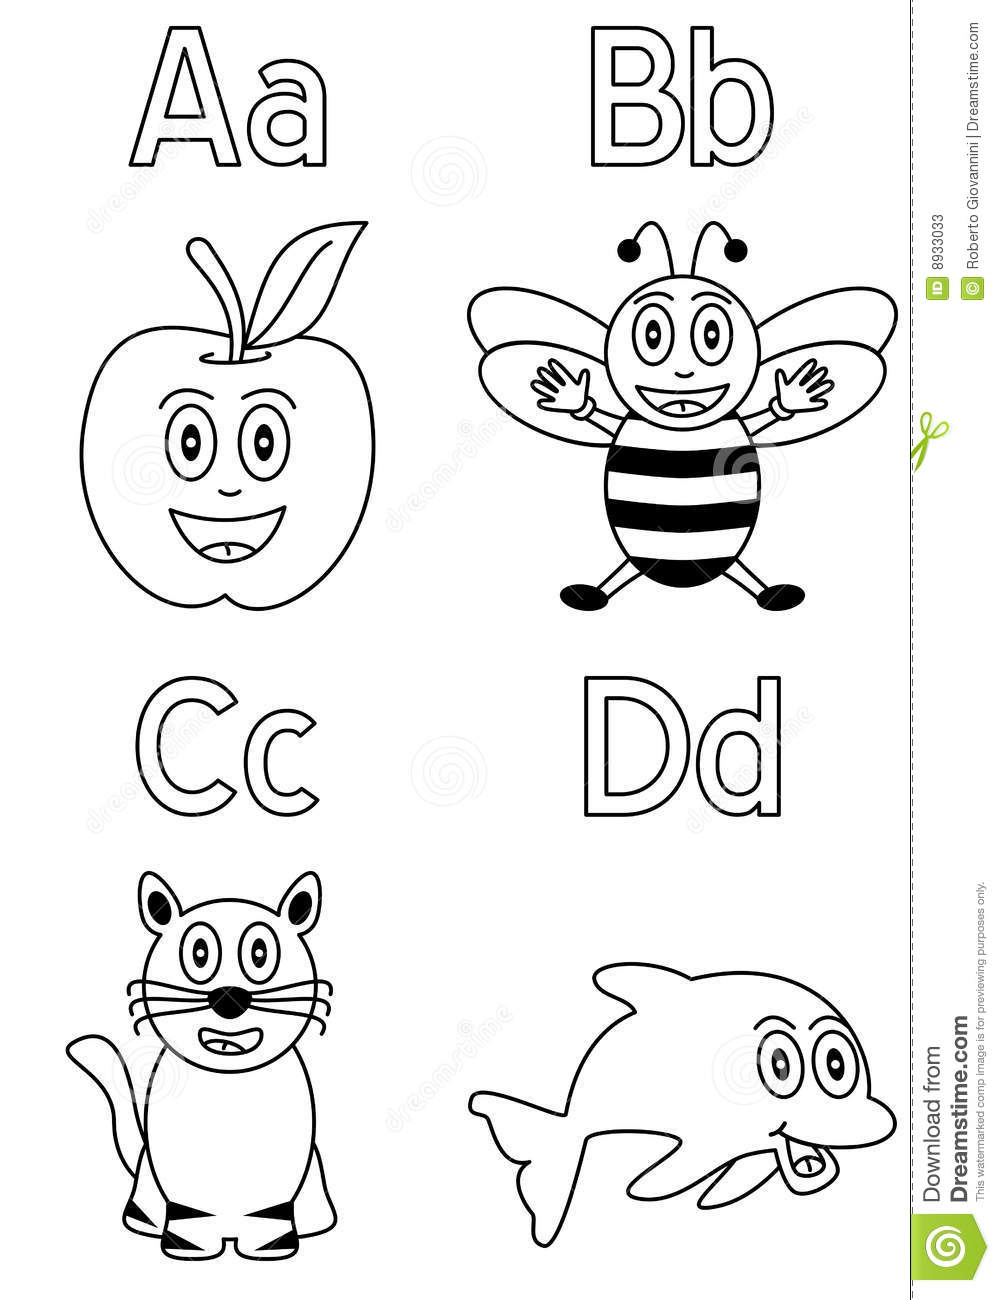 Coloring Alphabet For Kids [1] Stock Vector - Illustration of ...